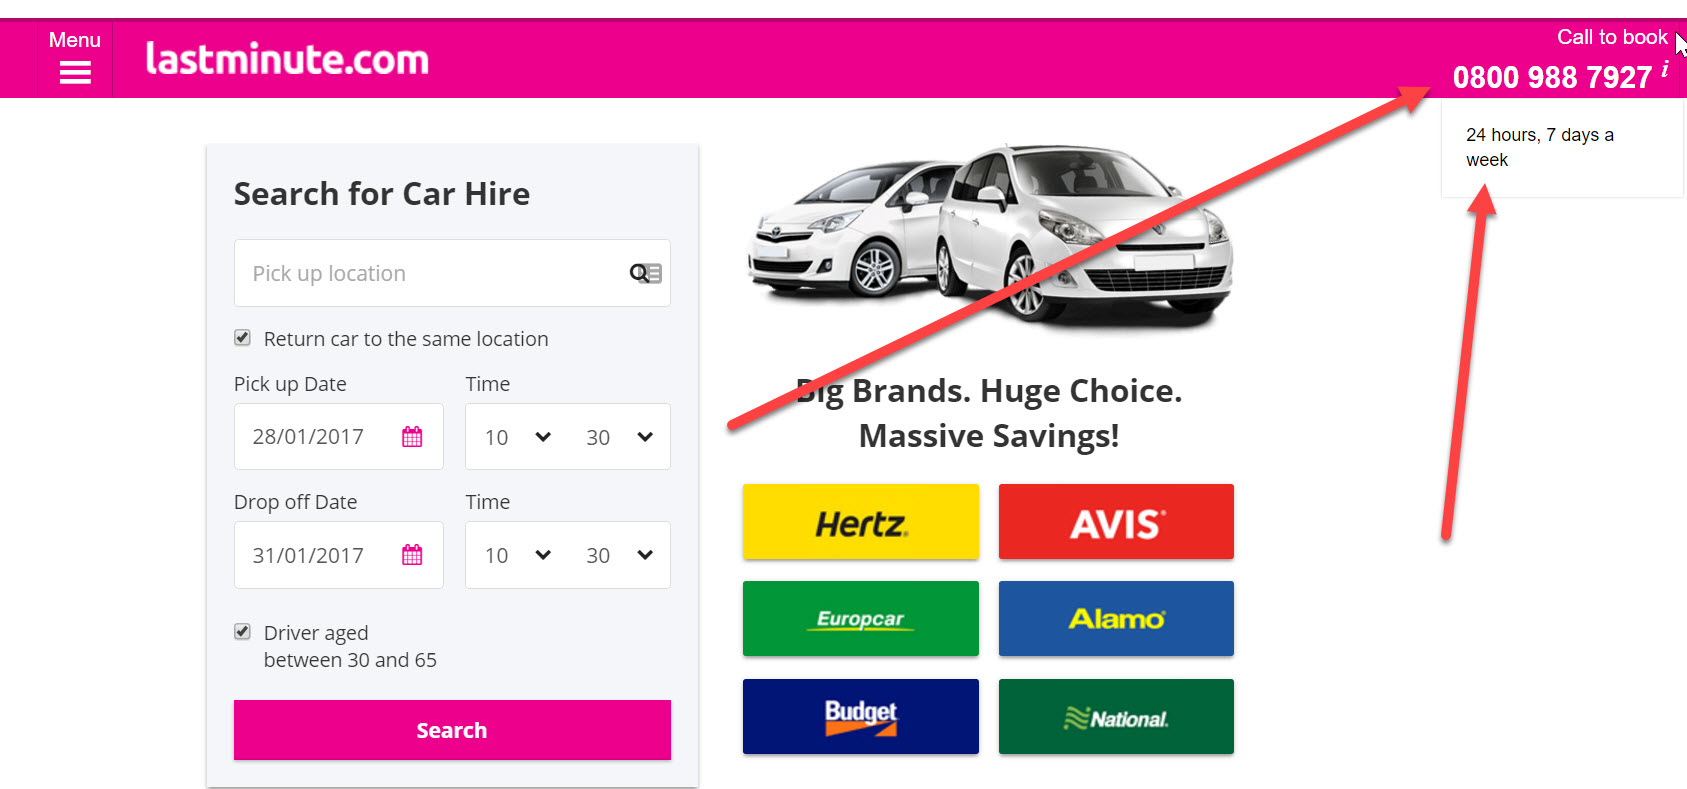 car-hire lastminute